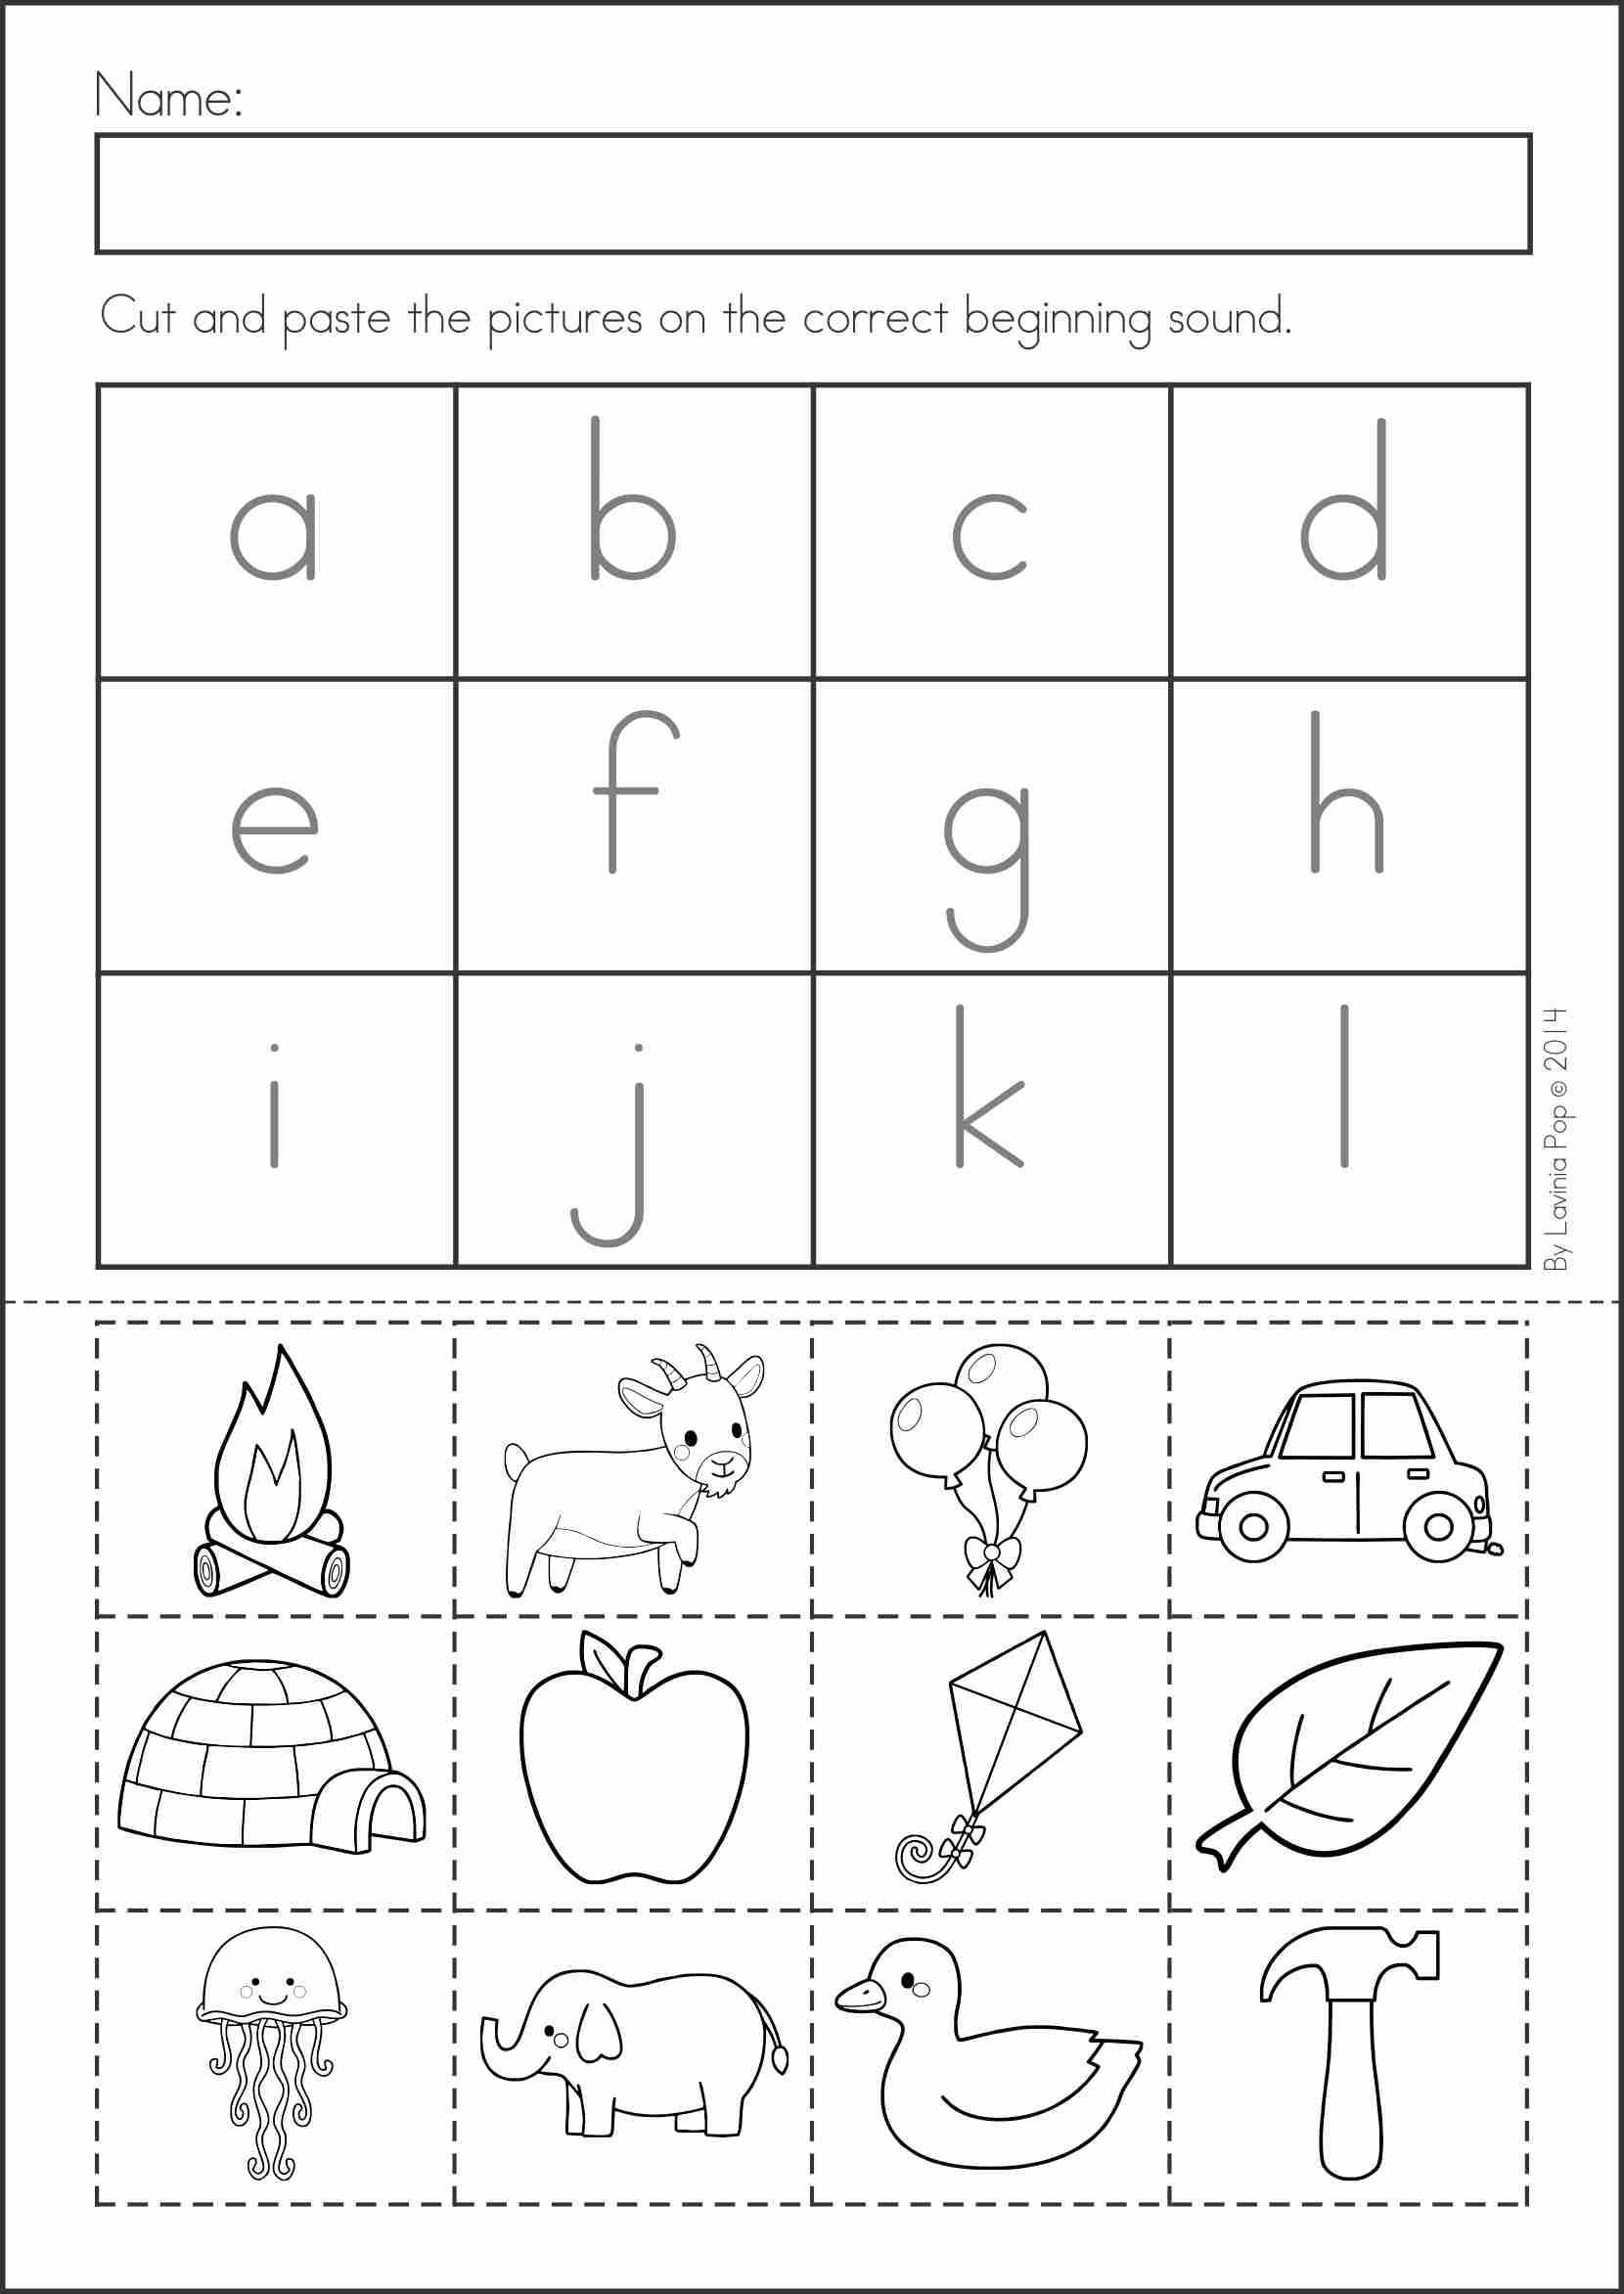 Cut and Paste Worksheets for Kindergarten together with Letter J Cut and Paste Worksheets the Best Worksheets Image